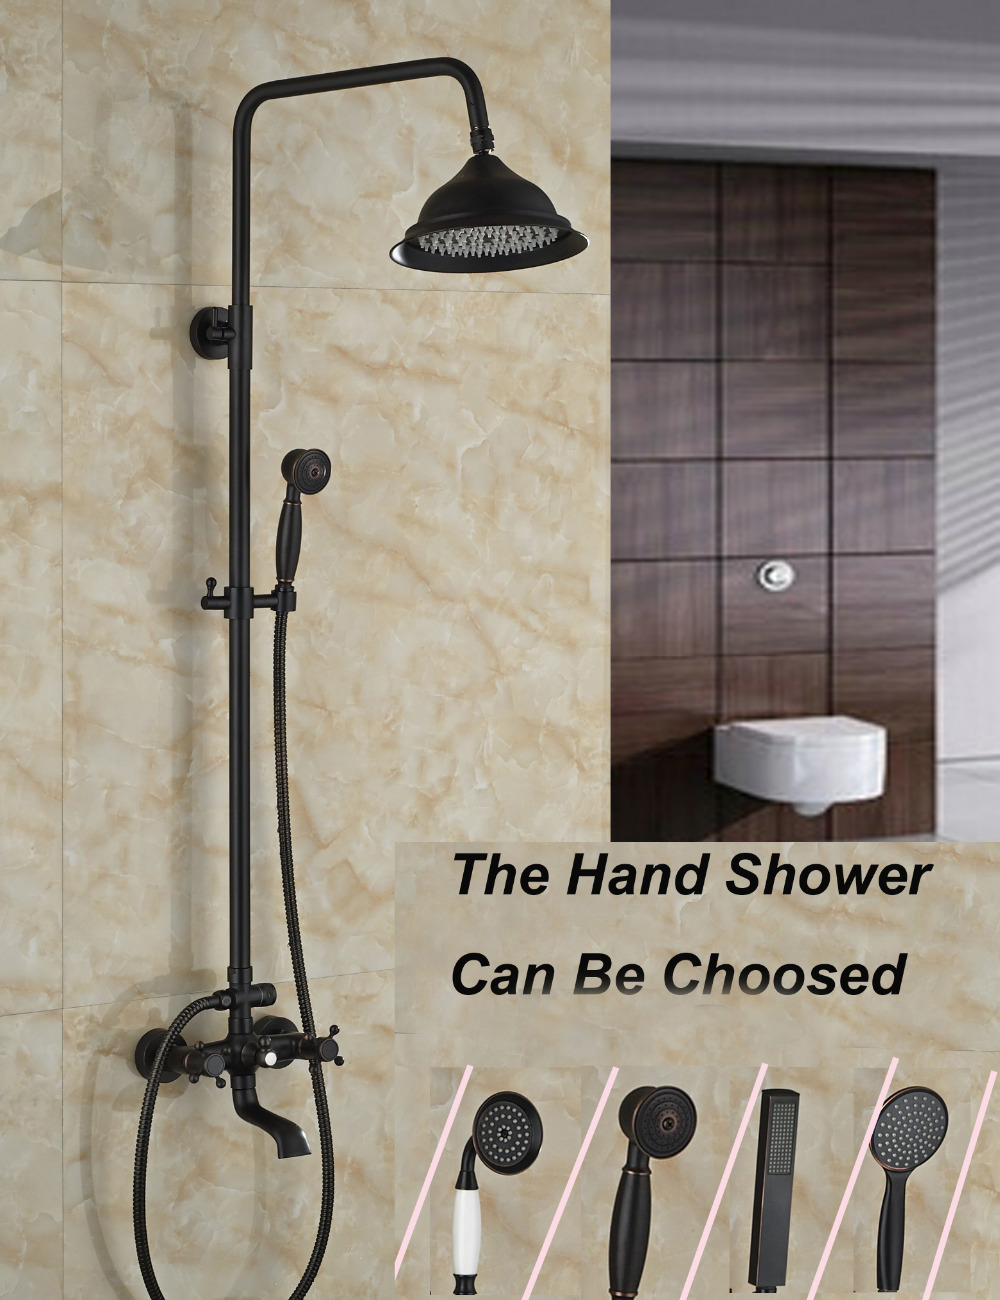 Wholesale And Retail Wall Mounted Oil Rubbed Bronze Rain Shower Faucet Set + Hand Sprayer + Tub Mixer Tap Spout